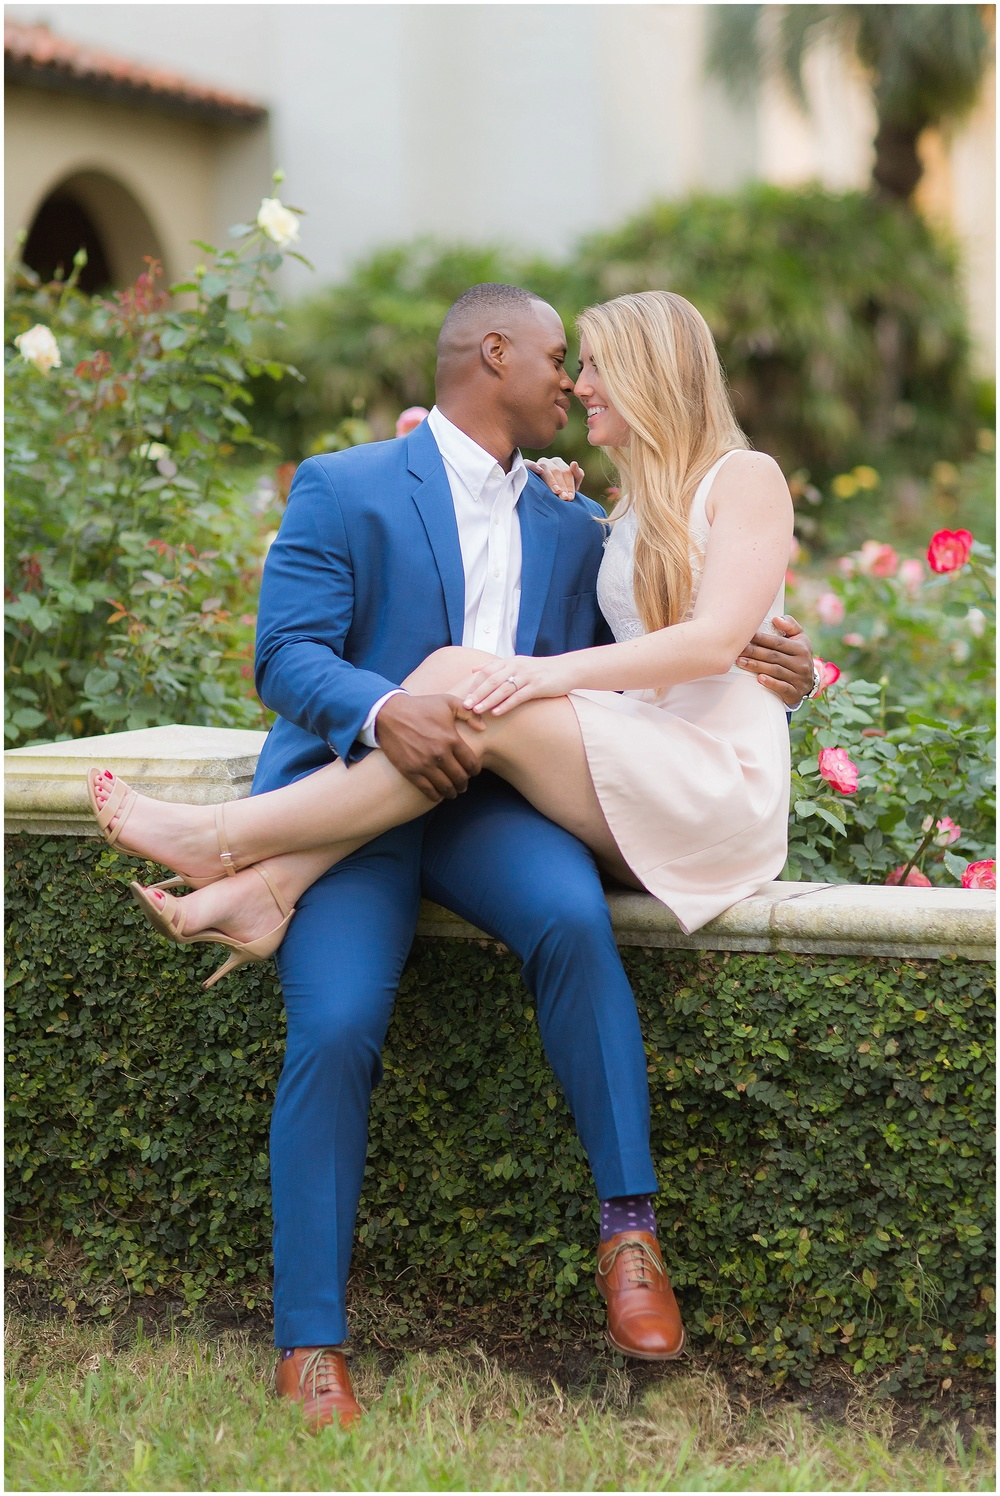 Winter Park  |  Rollins College  |  Engagement Session |  PSJ Photography